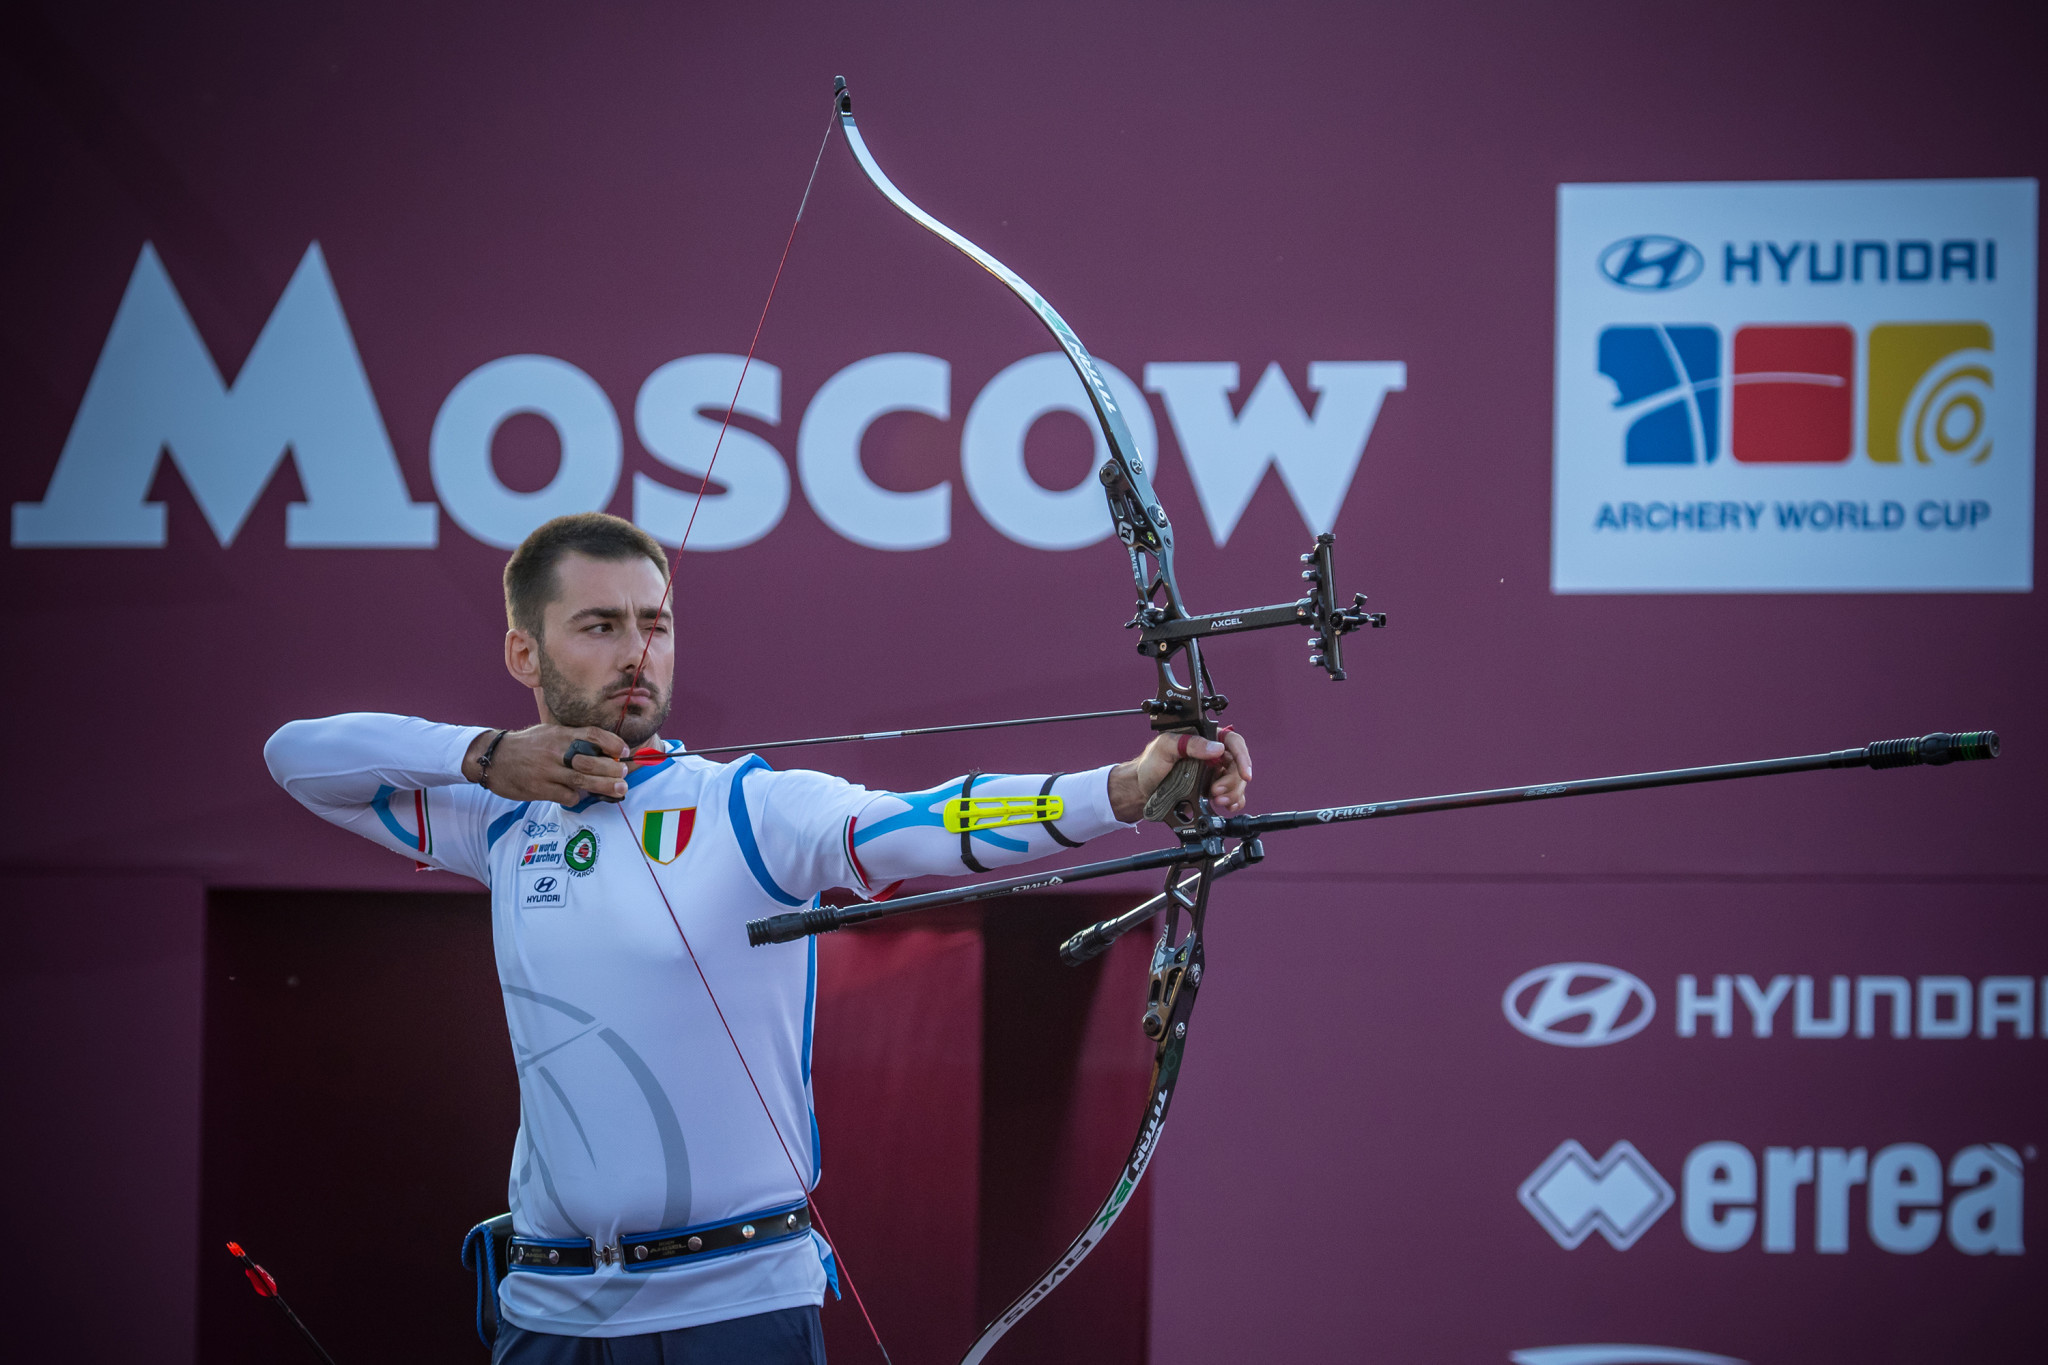 Italy's Mauro Nespoli takes aim during last year's Archery World Cup Final in Moscow ©Getty Images